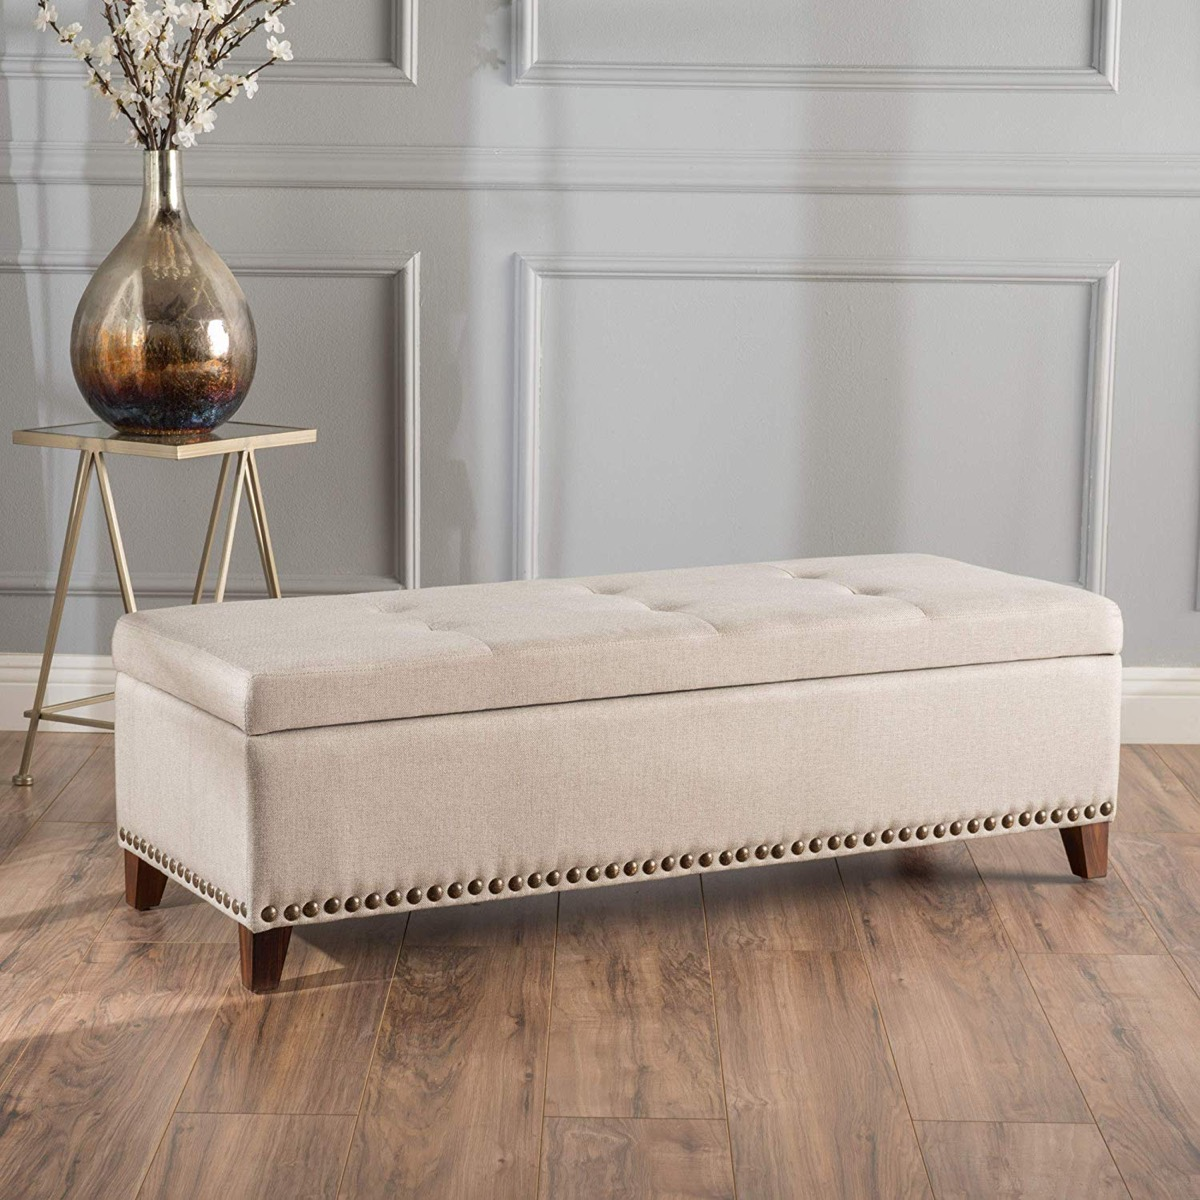 long-storage-bench-with-light-beige-upholstery-and-decorative-nailhead-trim